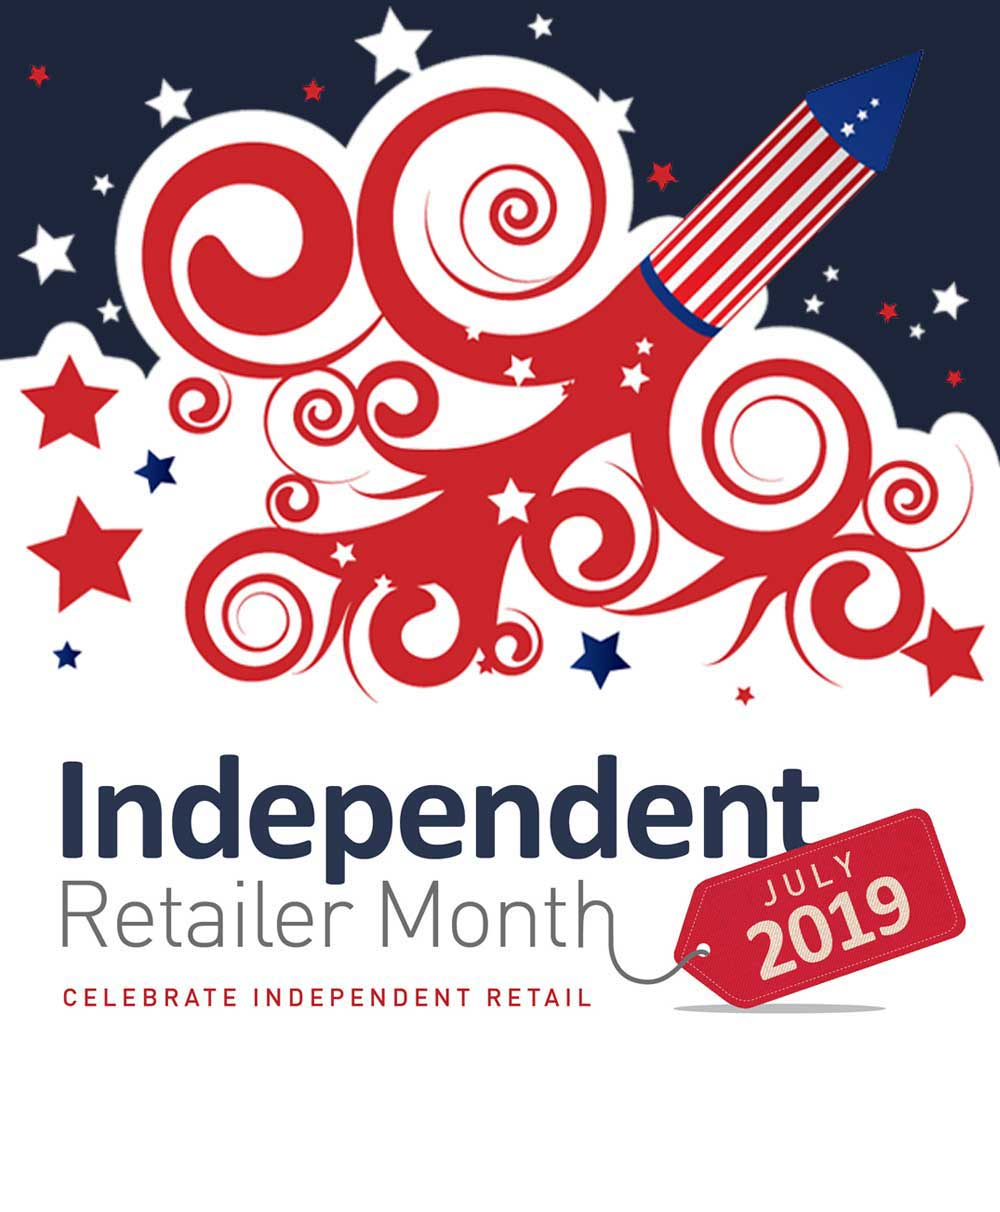 National Independent Retailer Month Retails Month